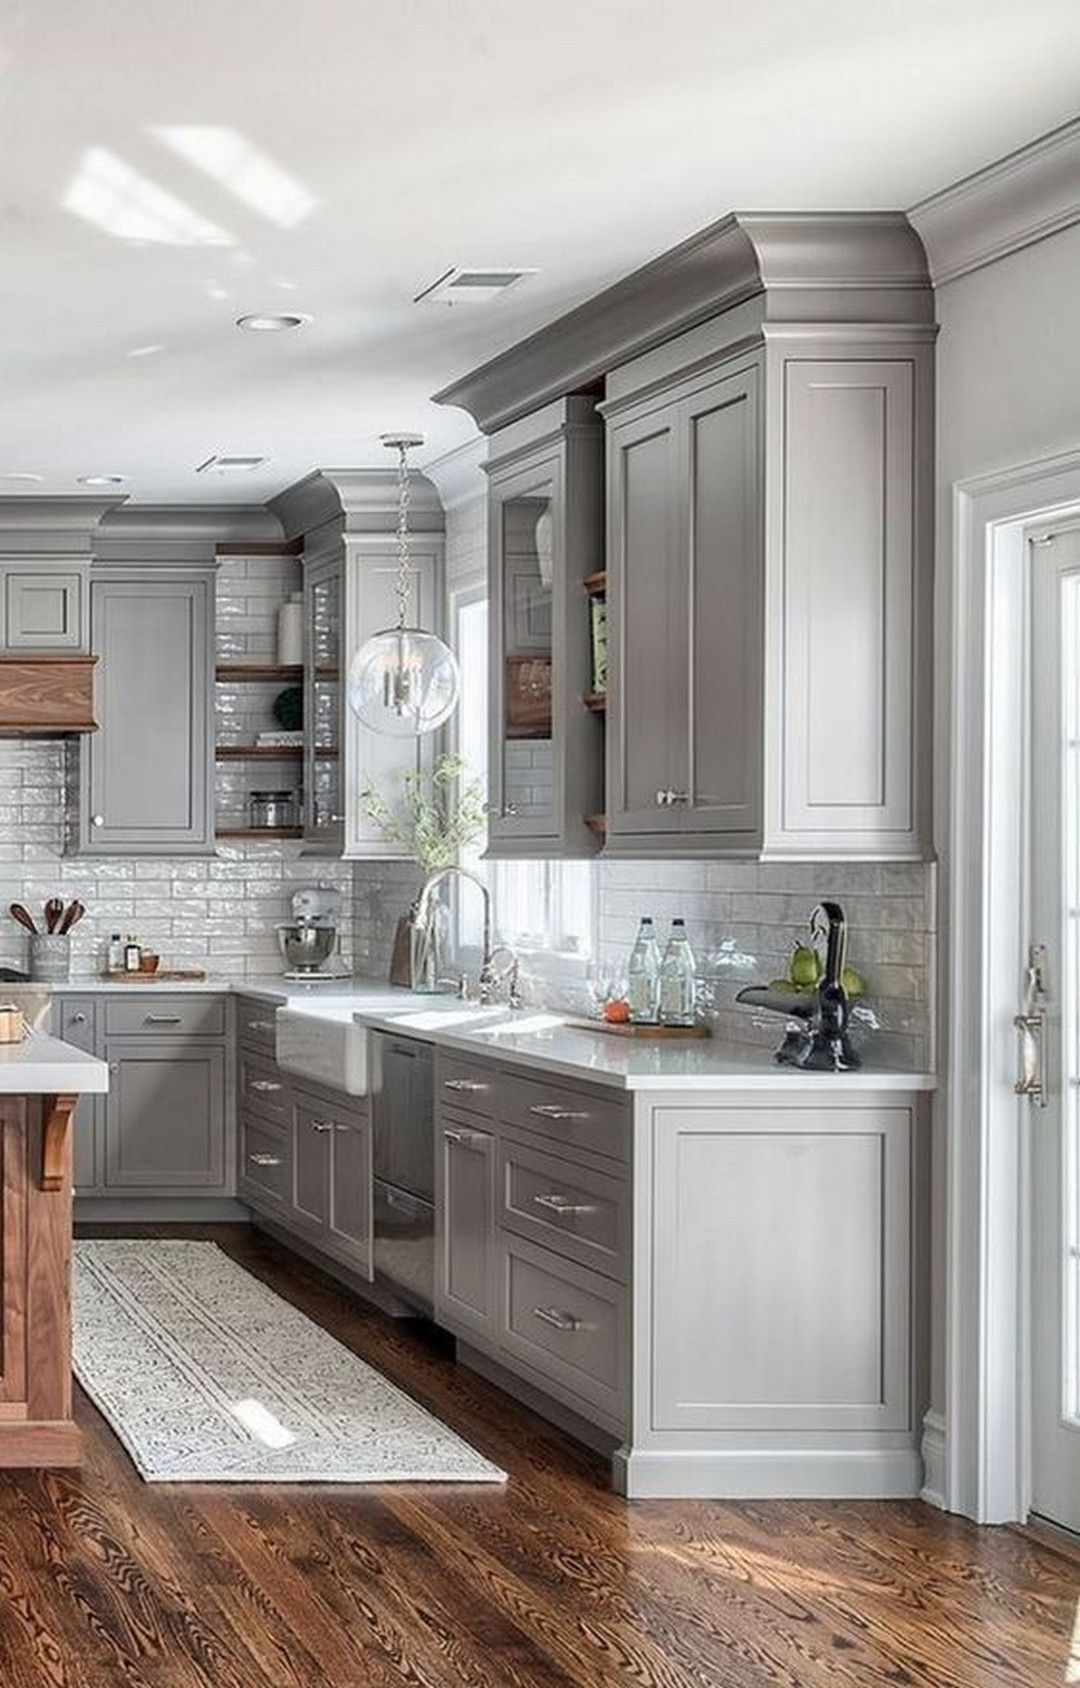 Learn How To Raise Kitchen Cabinets To The Ceiling And Add A Floating Shelf Underneath To Max Kitchen Renovation Cost New Kitchen Cabinets Home Decor Kitchen